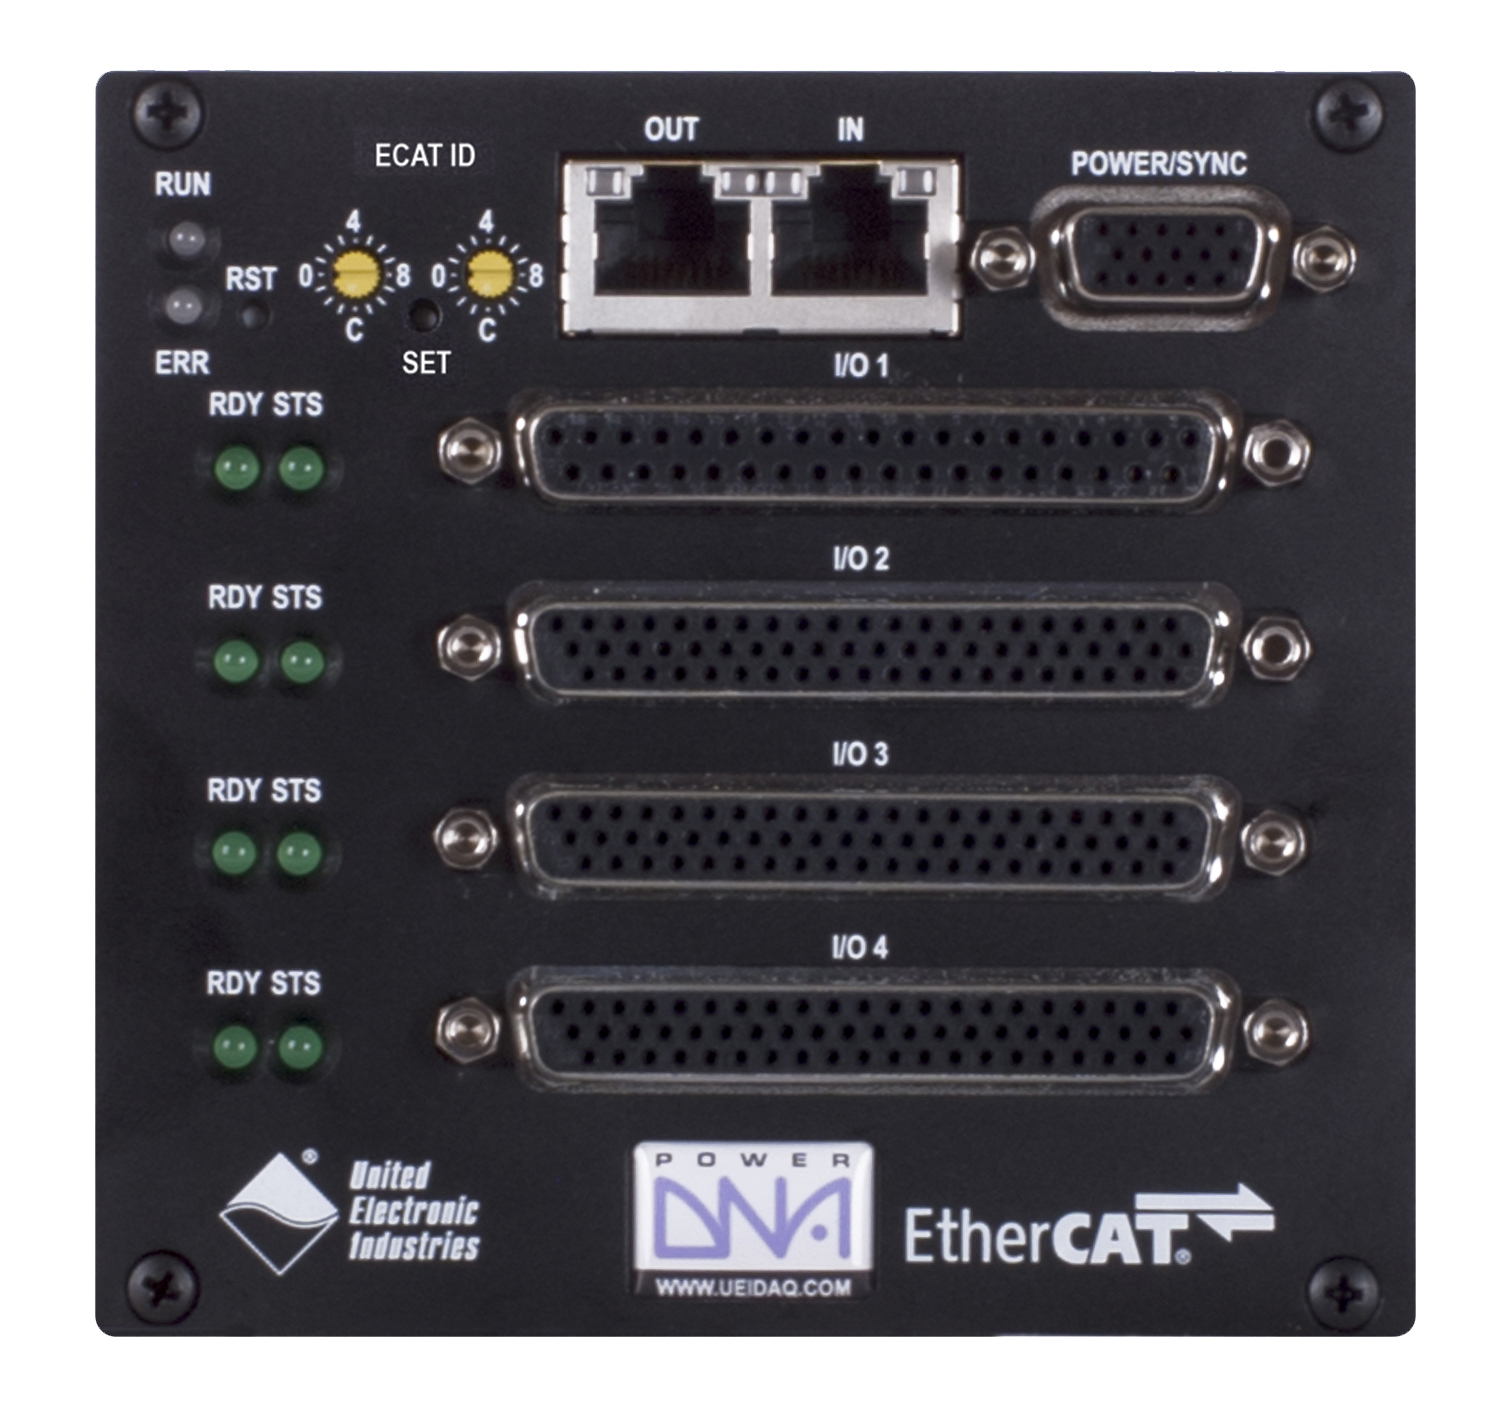 4 Slot EtherCAT based I/O Cube